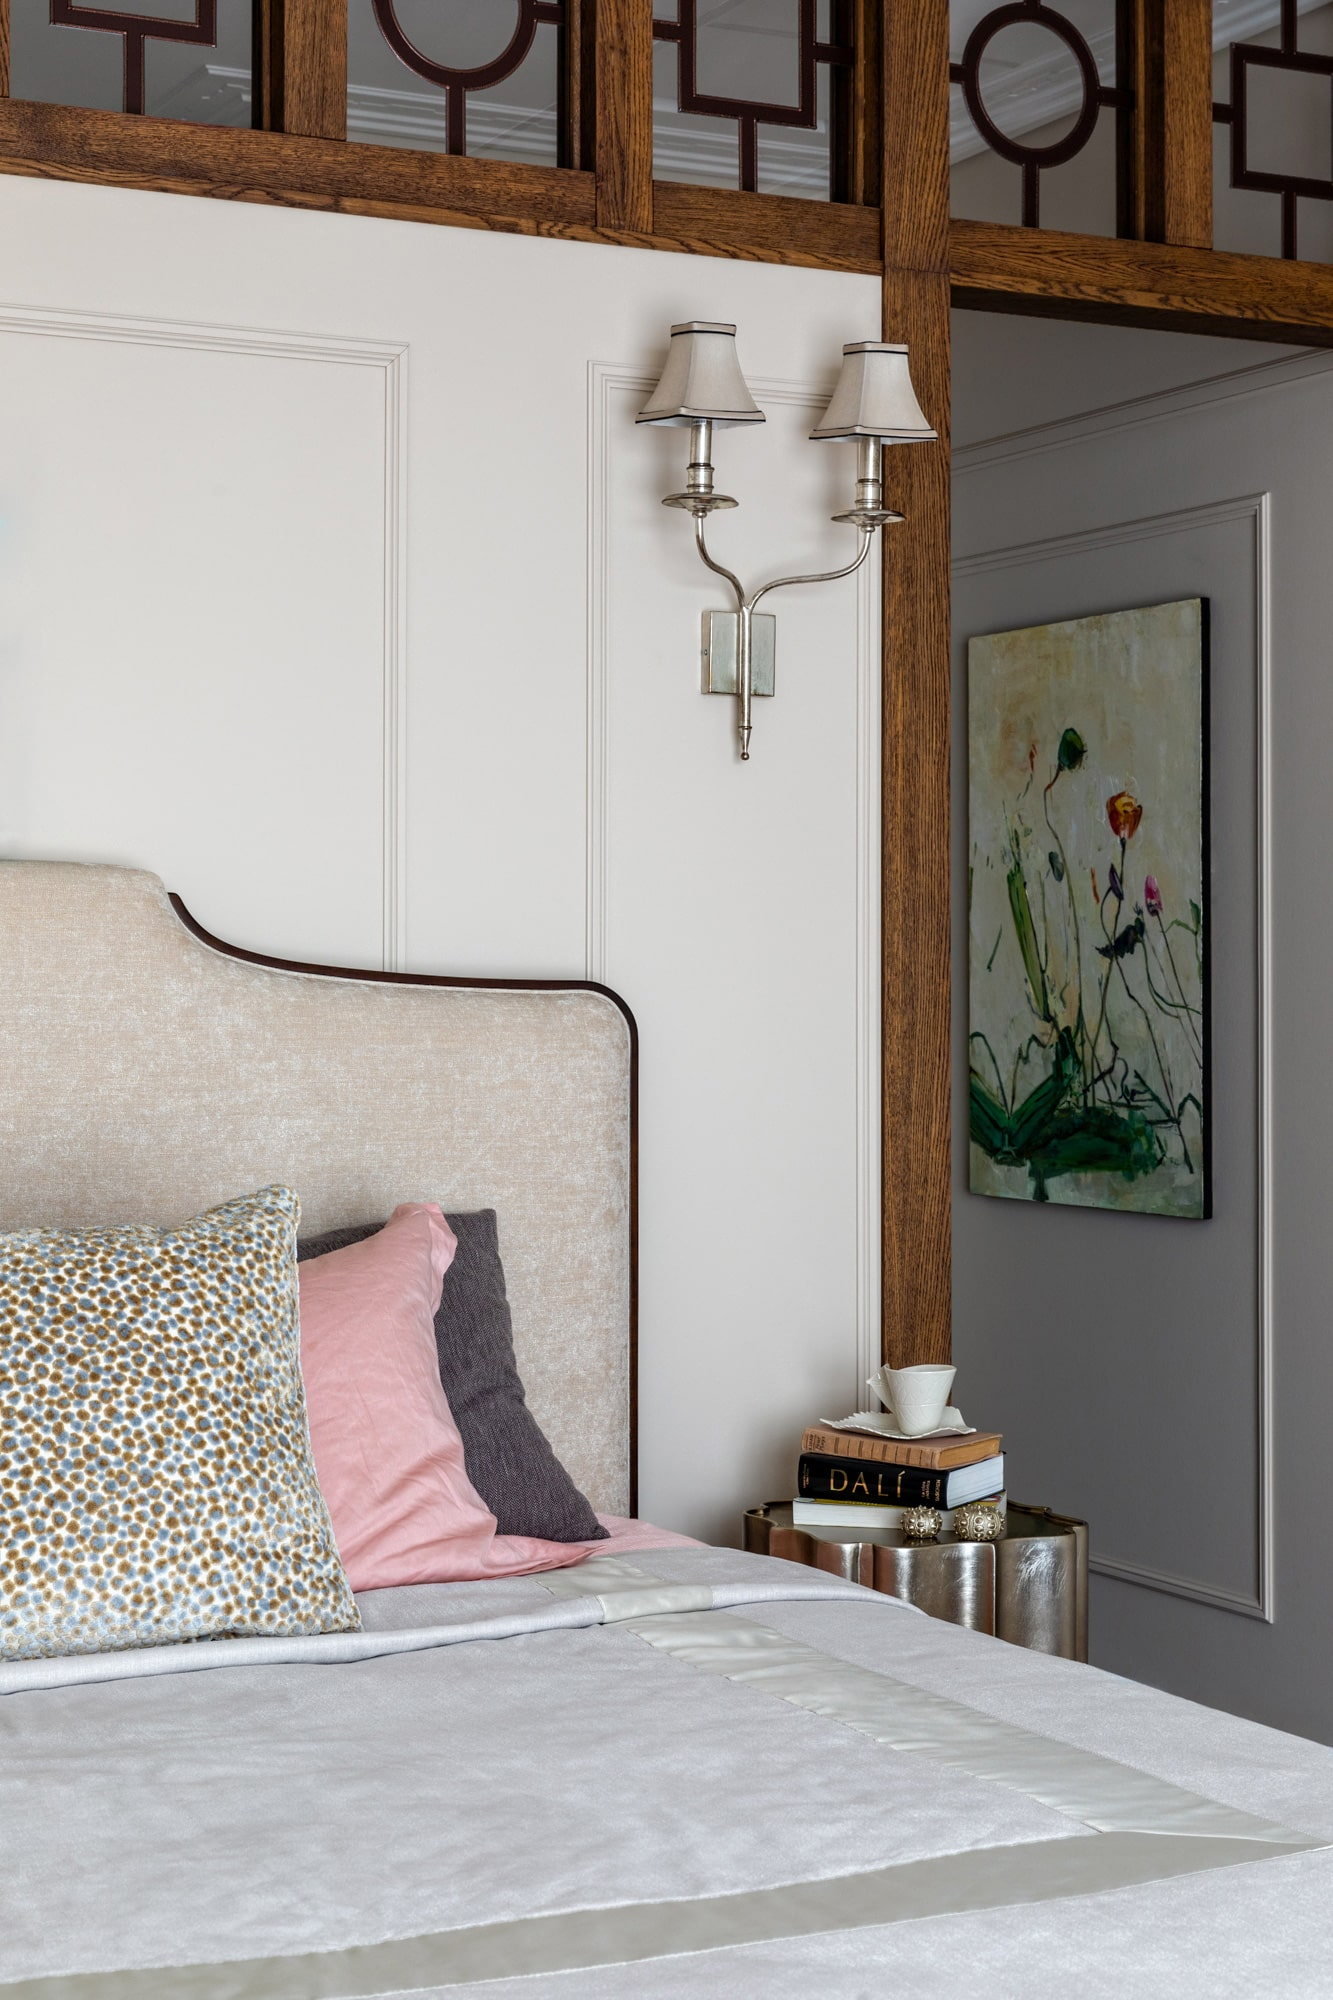 interior detail shot: bedroom with beige warm walls, beige bed; bedside table with books and a painting on the wall